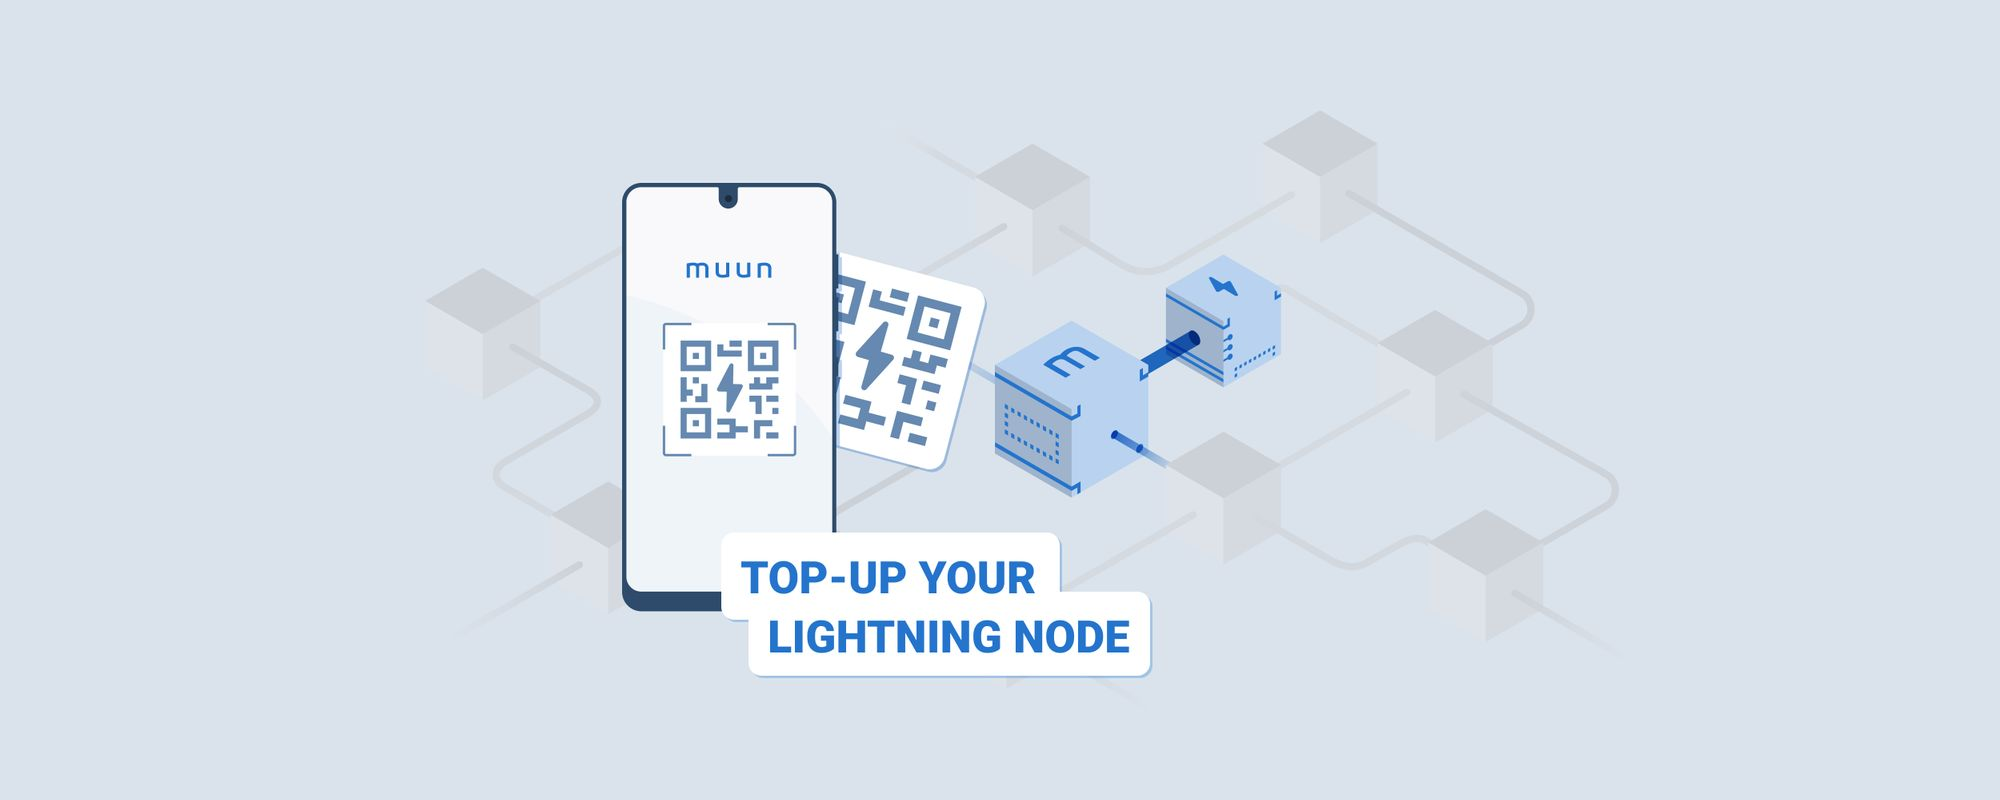 Add Funds to Your Lightning Node with Muun Top Up